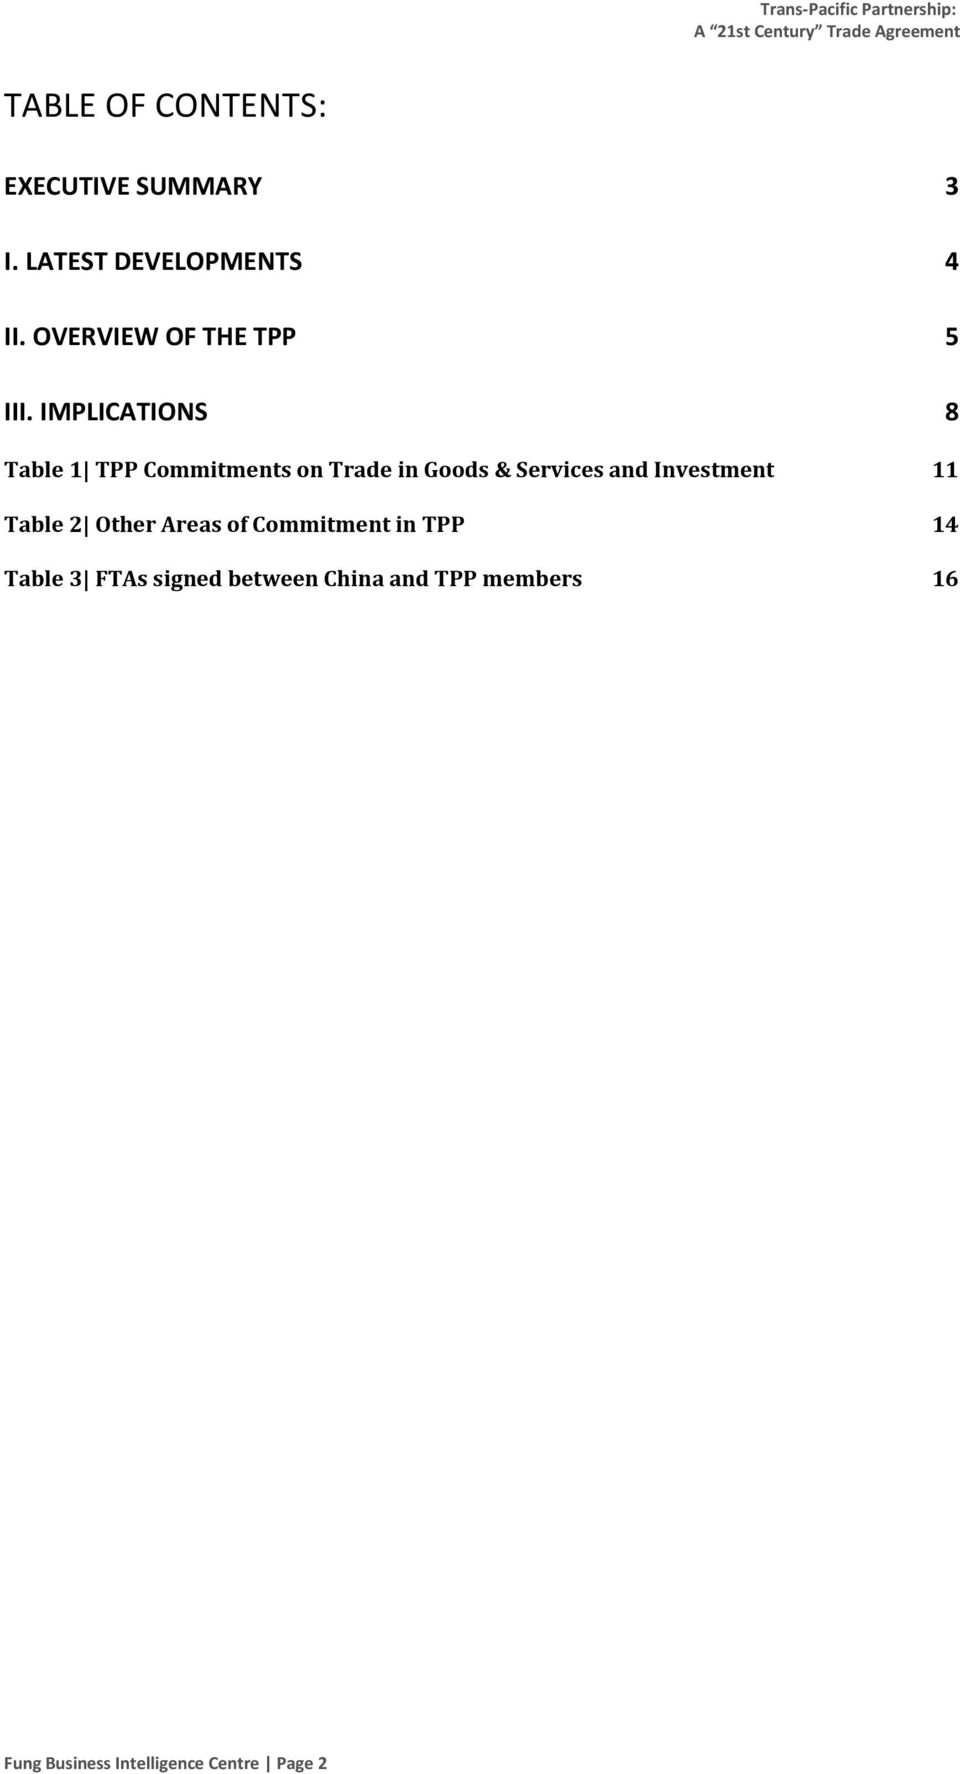 IMPLICATIONS 8 Table 1 TPP Commitments on Trade in Goods & Services and